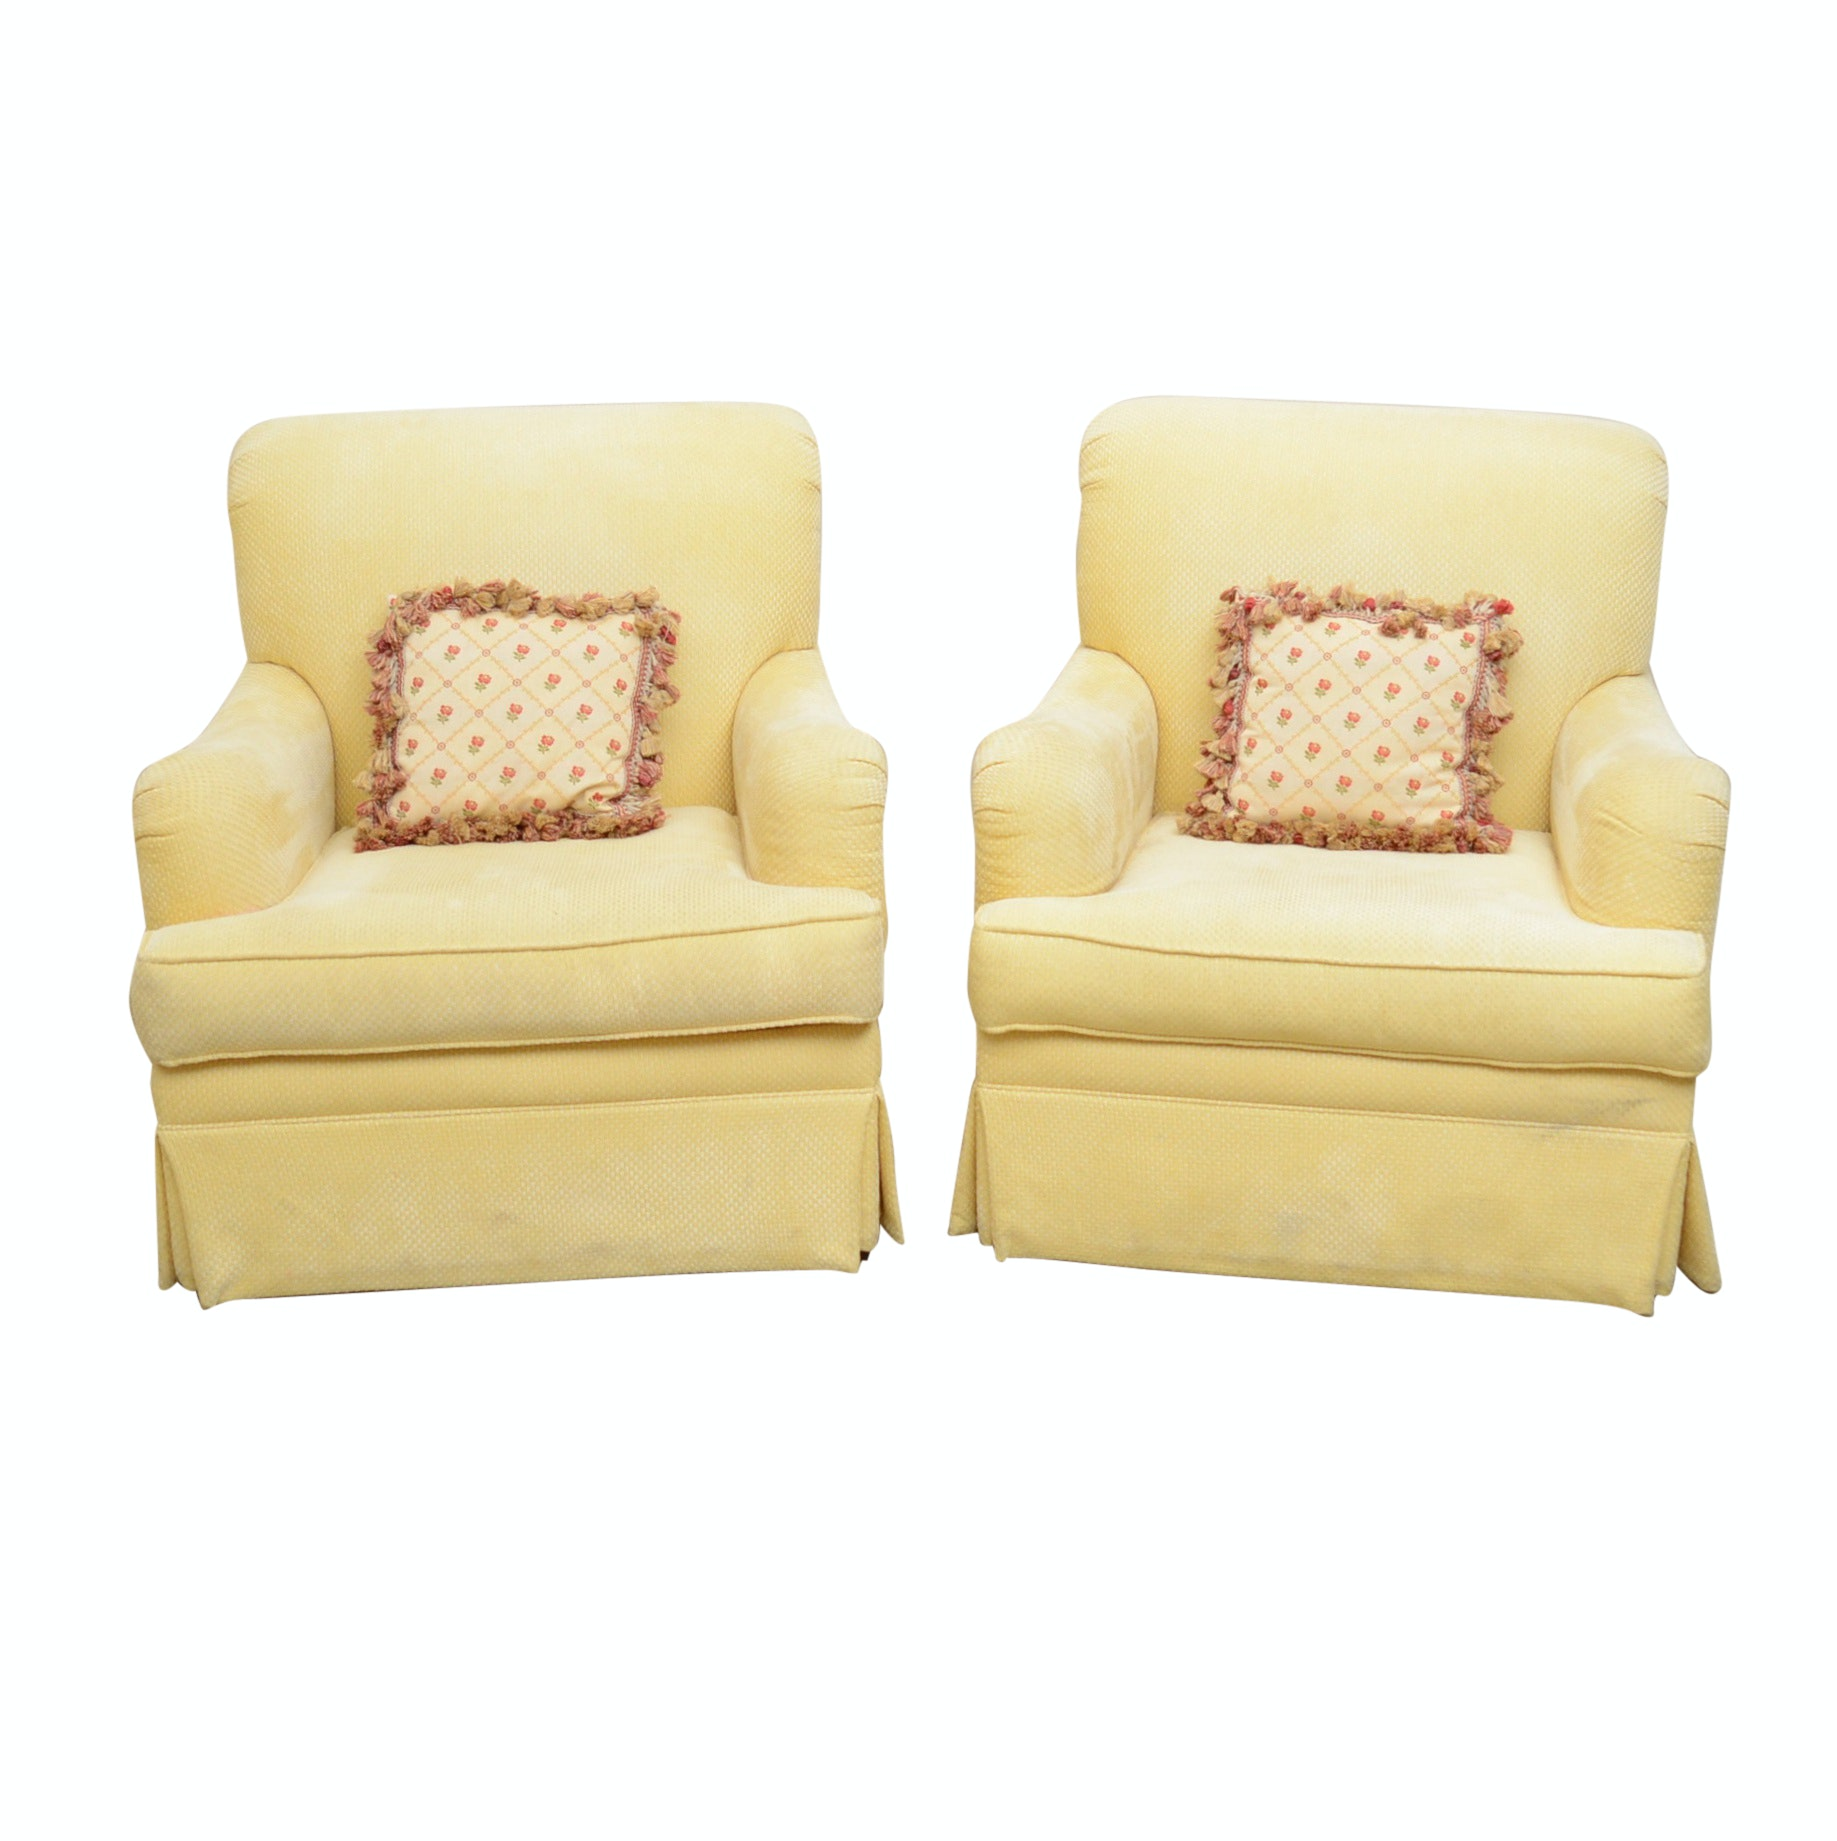 Pair of Upholstered Armchairs, Late to Mid 20th Century